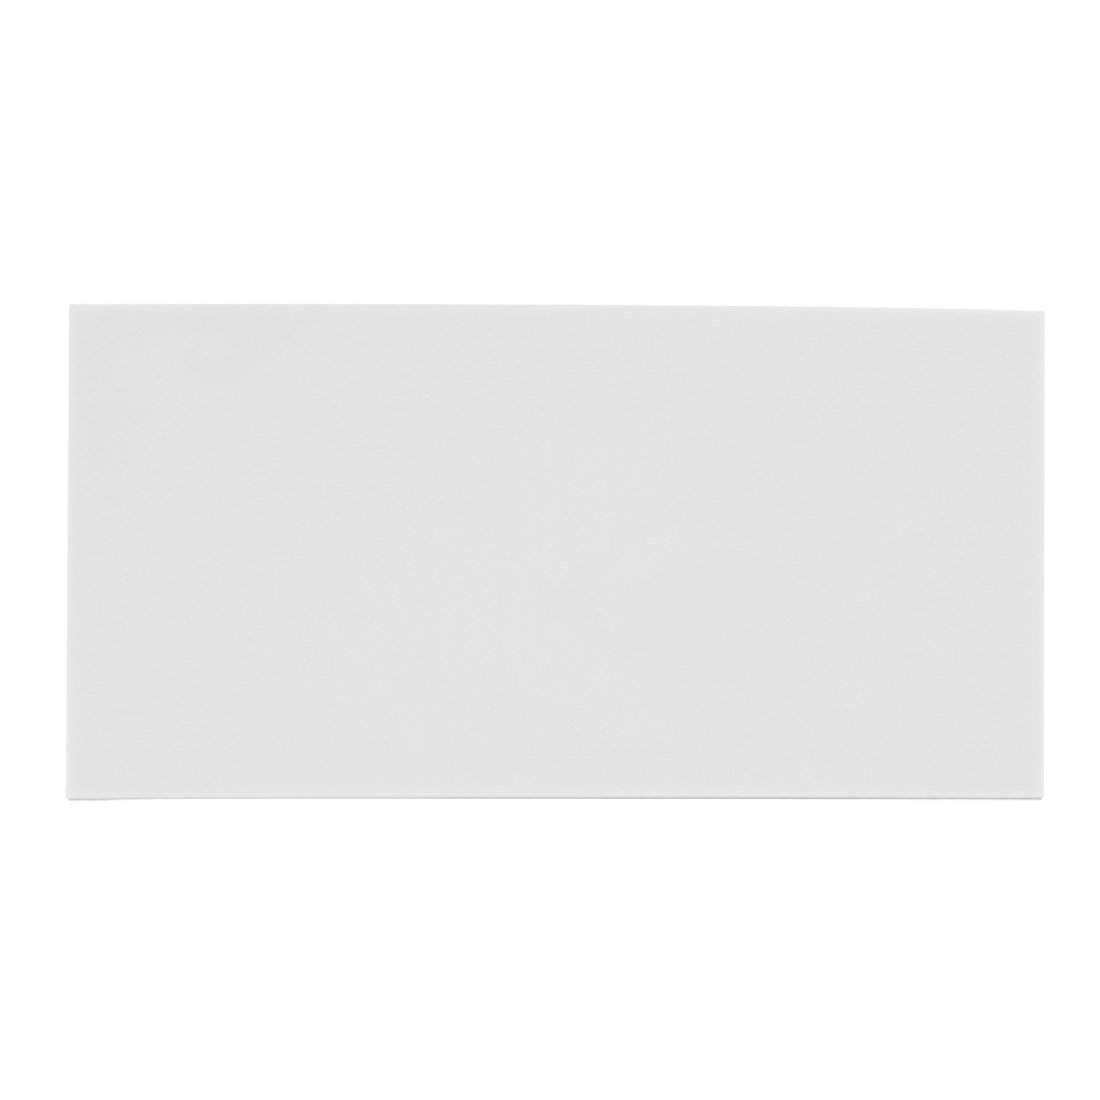 Uxcell 2 mm Thickness White Plastic Perspex Acrylic Plexiglas Sheet, A4 Size